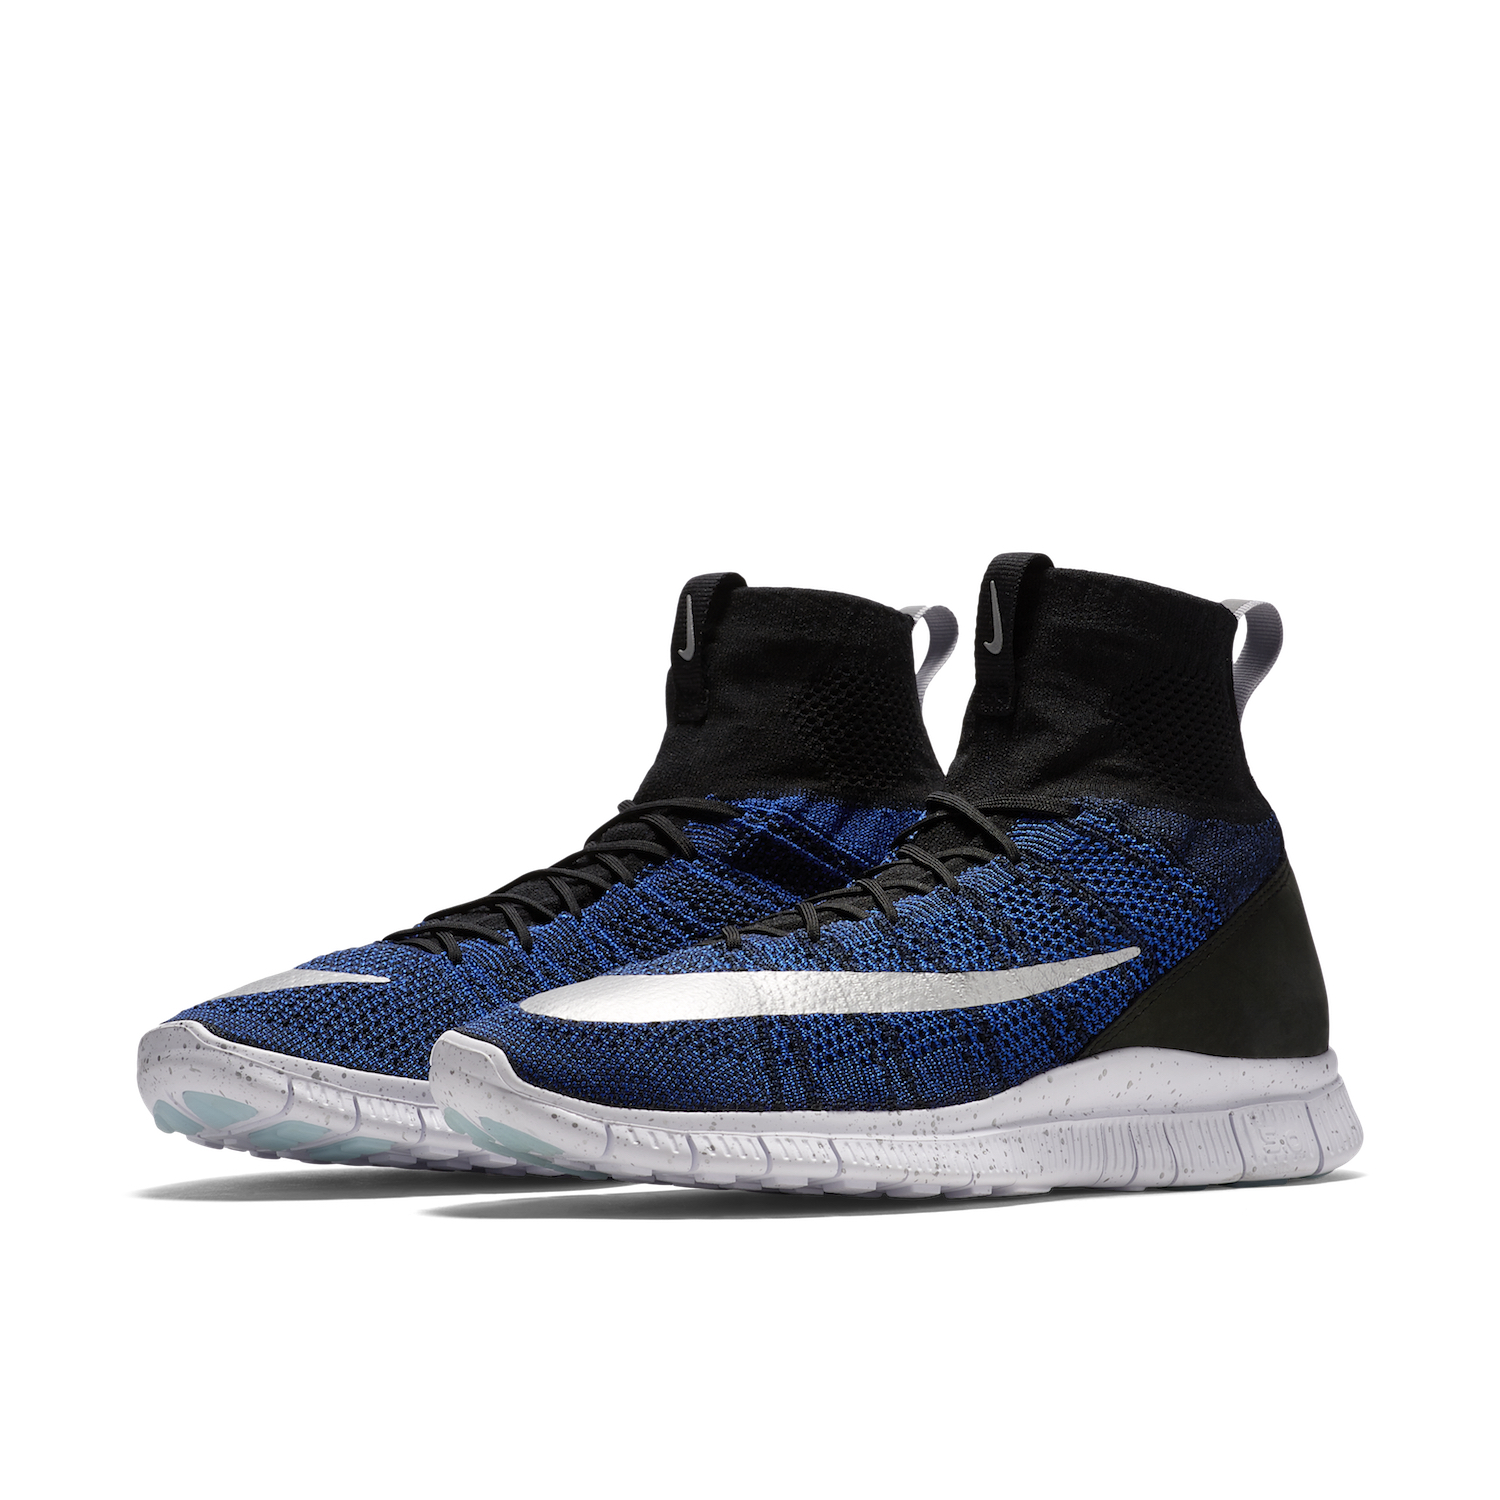 official photos b585e f2792 The CR7 Nike Free Mercurial Superfly is for the Streets ...